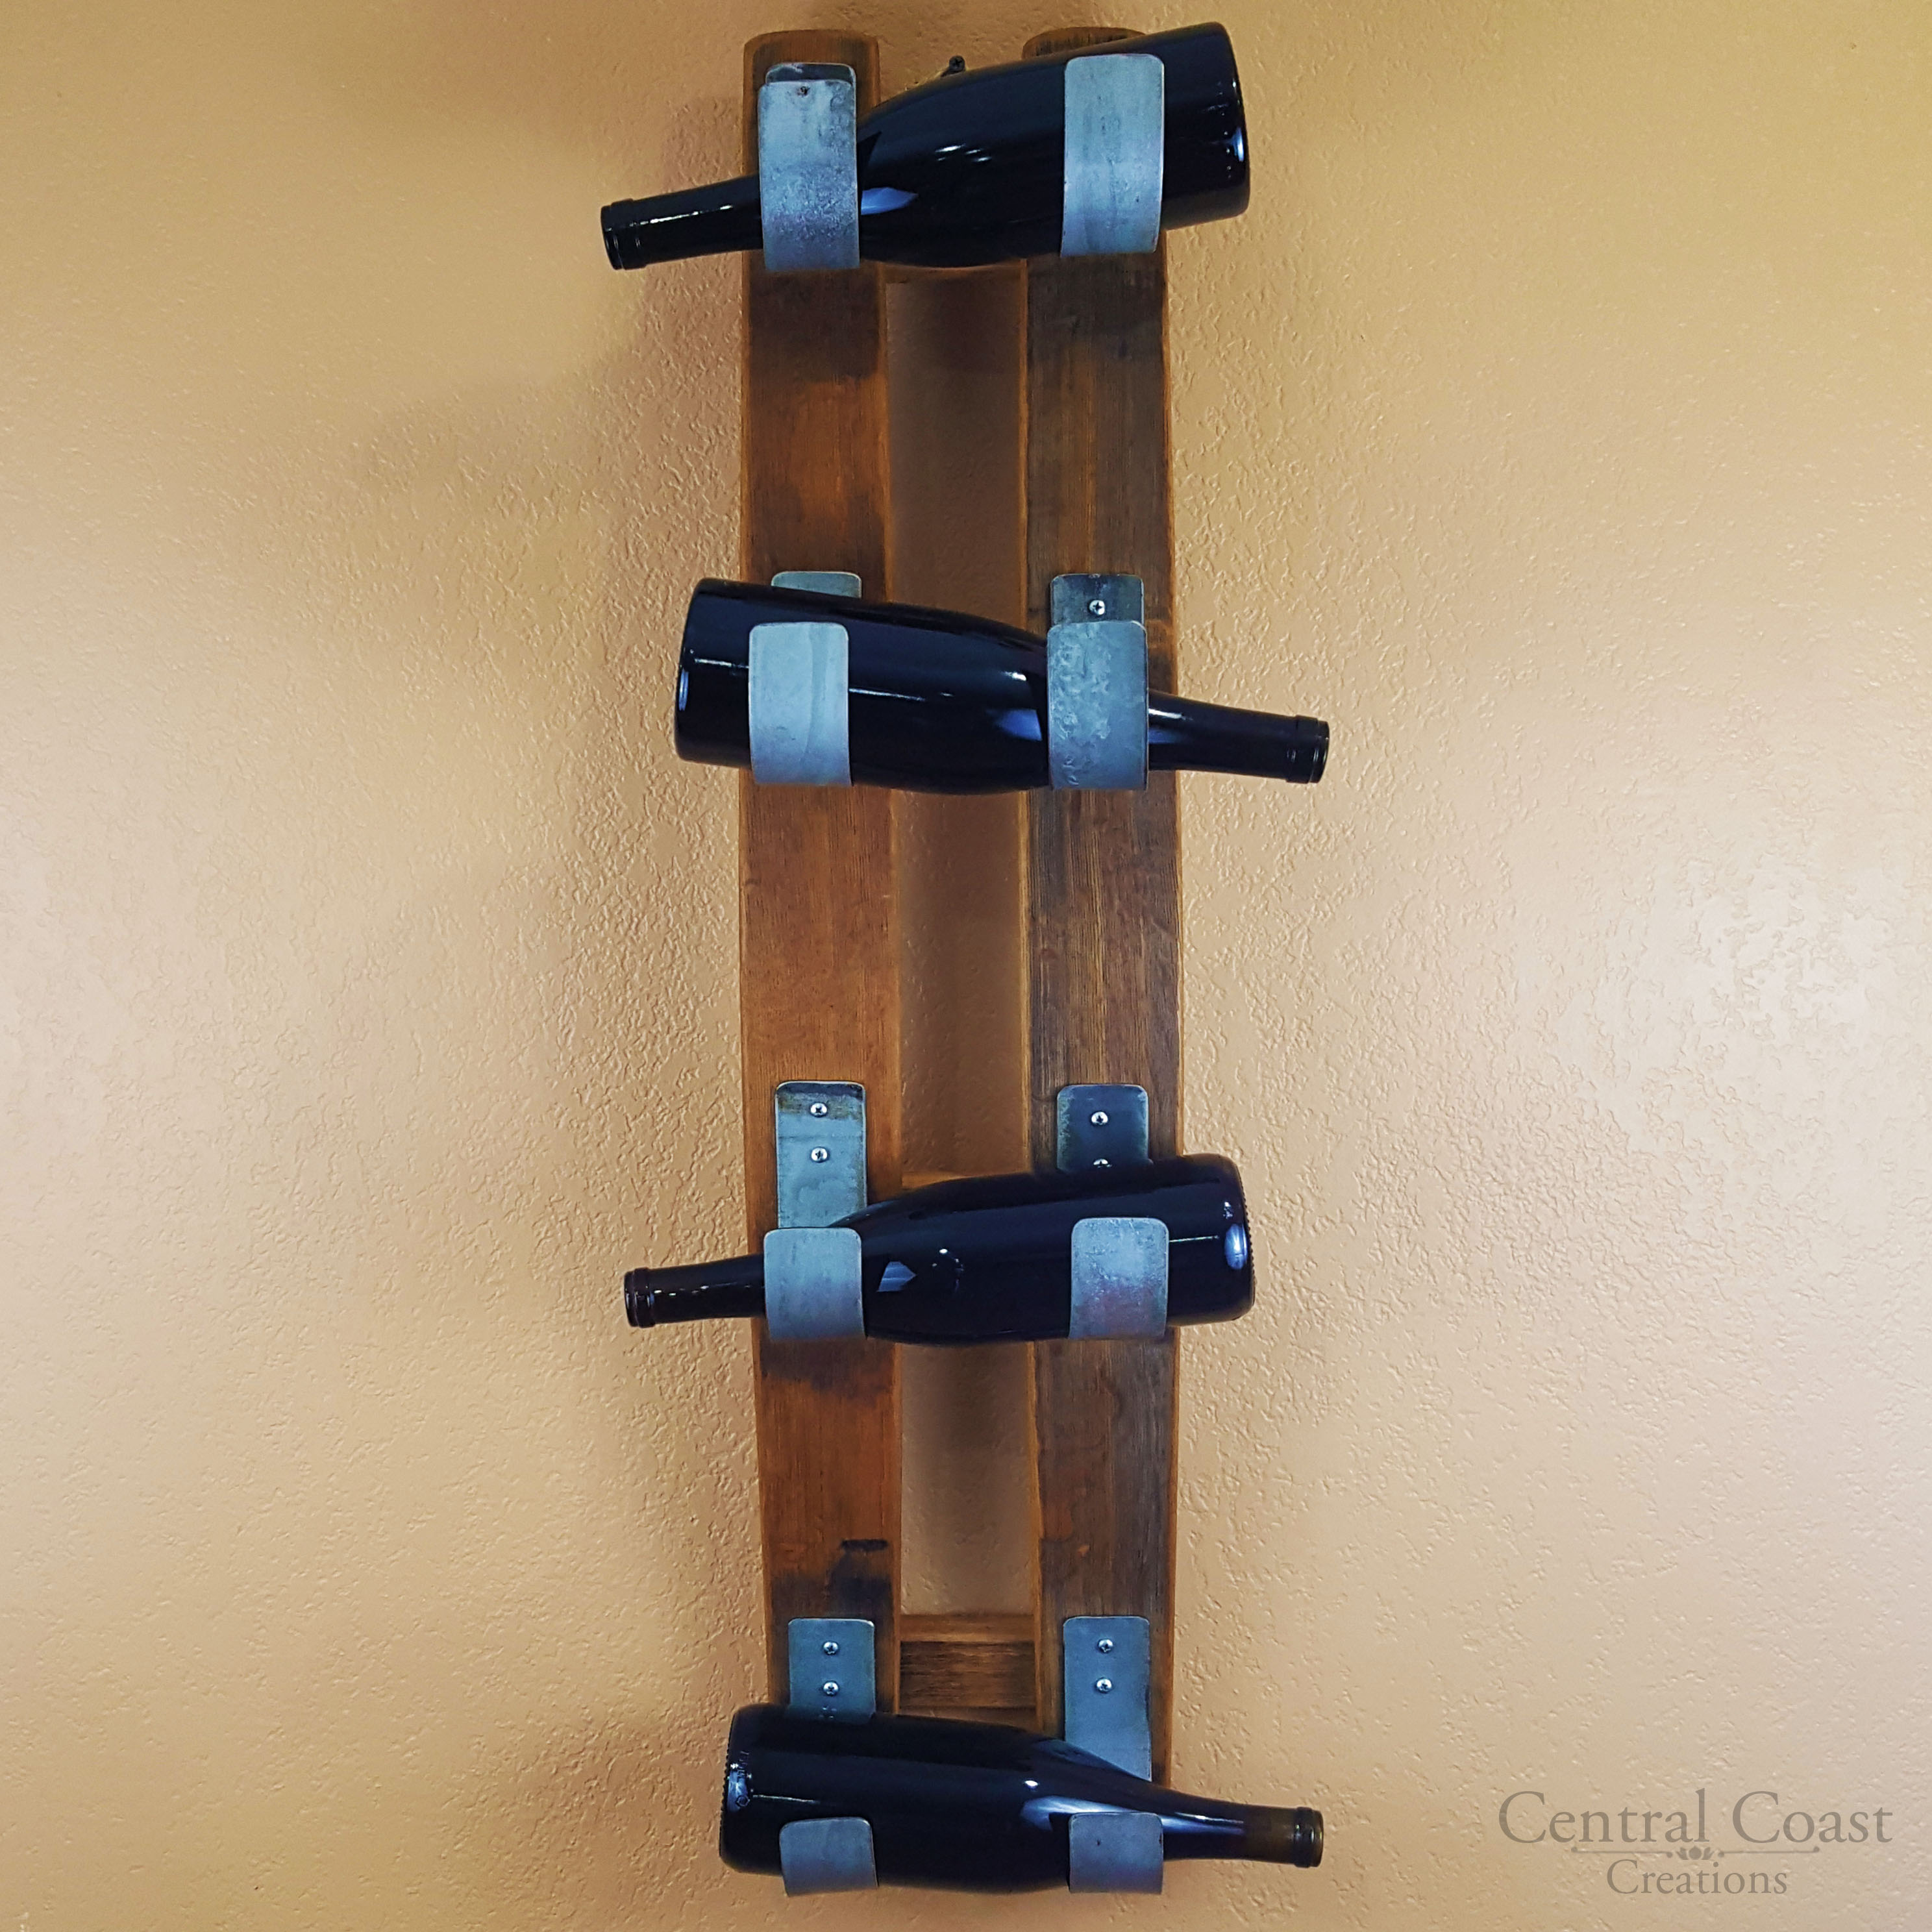 Details About Decorative Wine Barrel Stave 4 Bottle Wall Rack Rustic Furniture Home Decor Bar